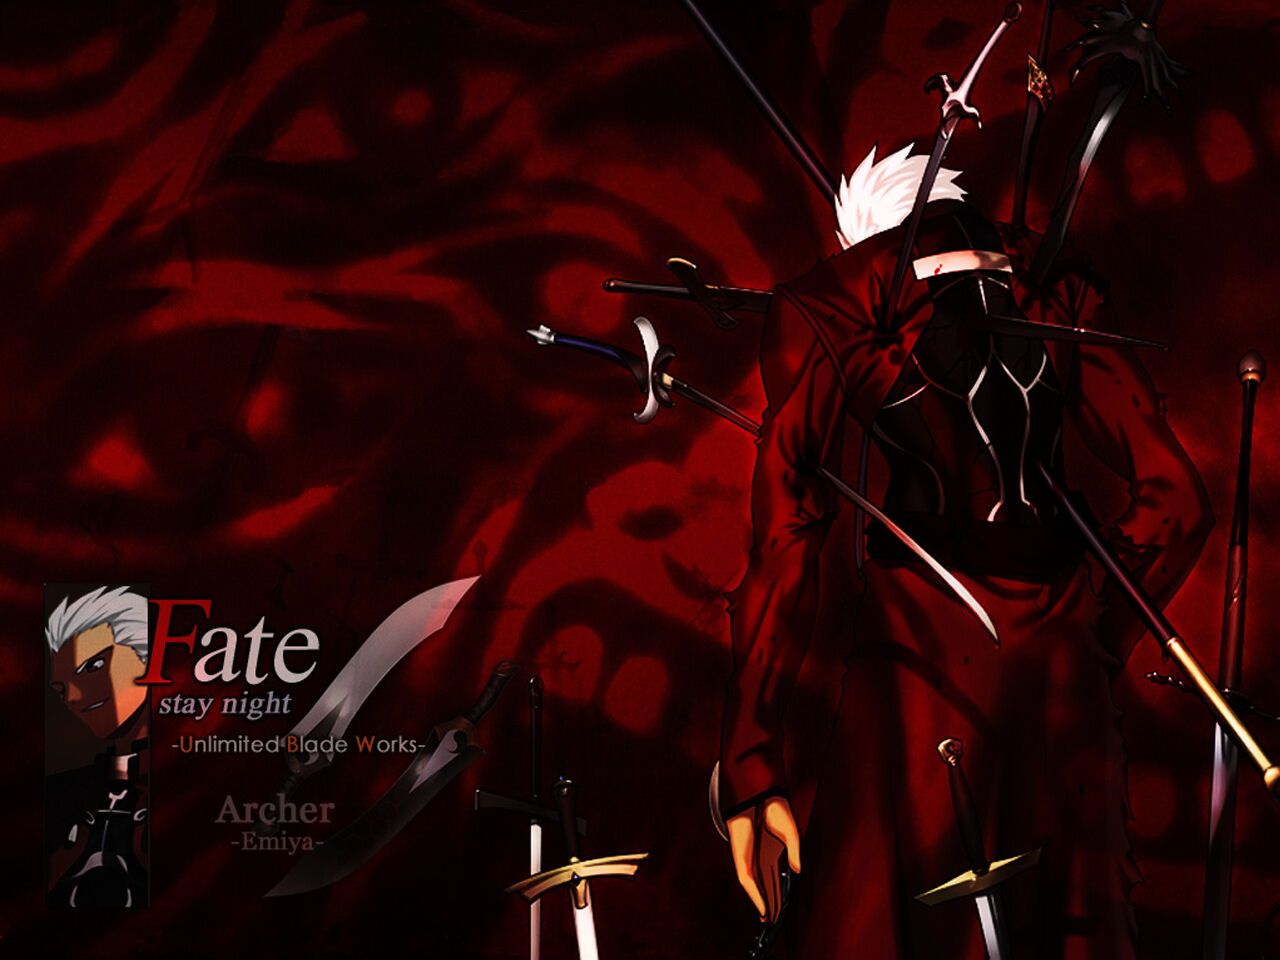 Anime Fate Stay Night Unlimited Blade Works Archer Wallpaper